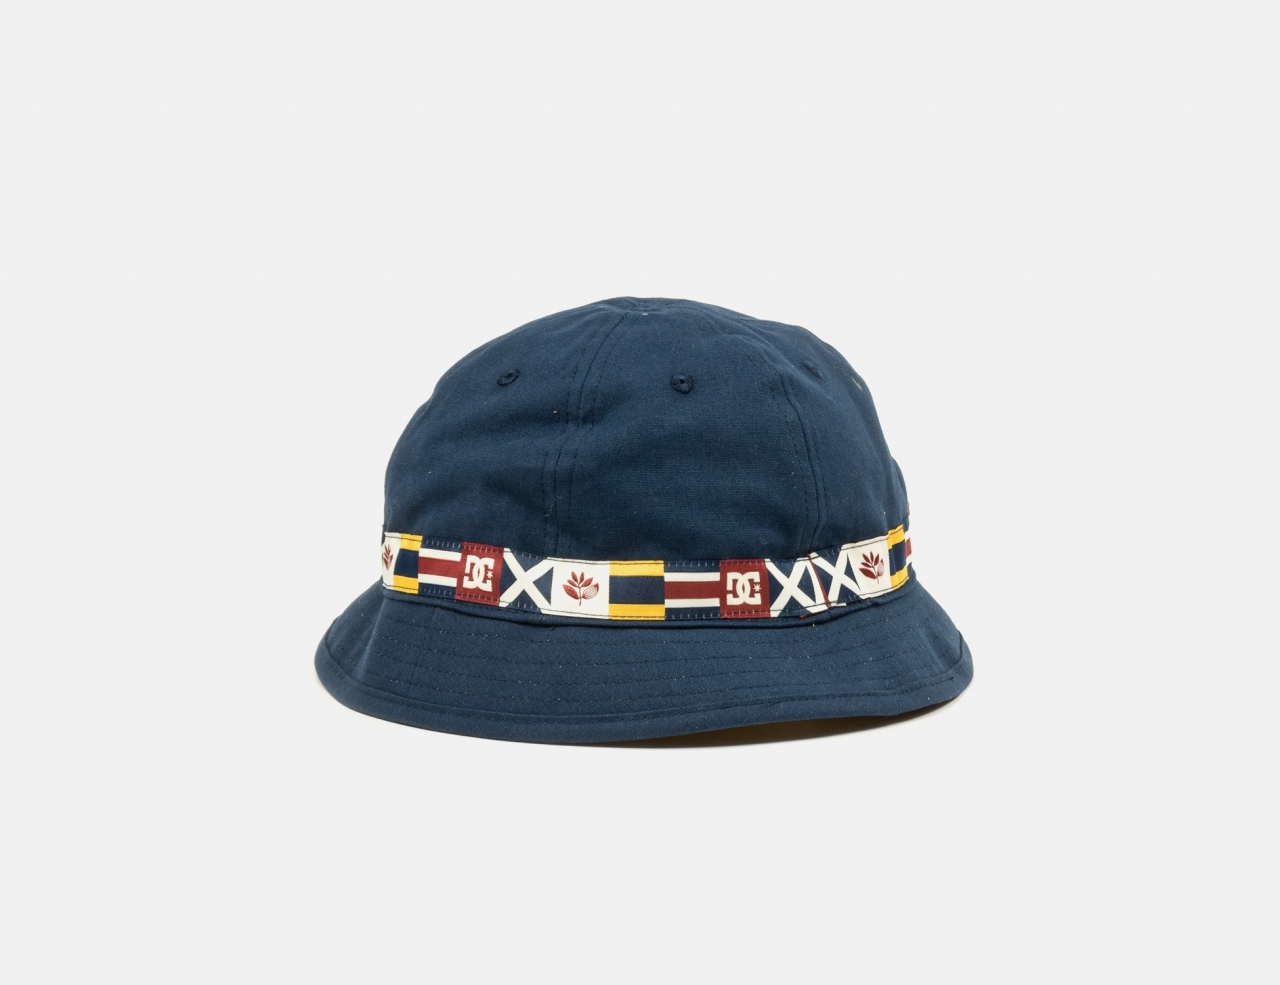 DC Shoes x Magenta Bucket Hat - Navy / Yellow